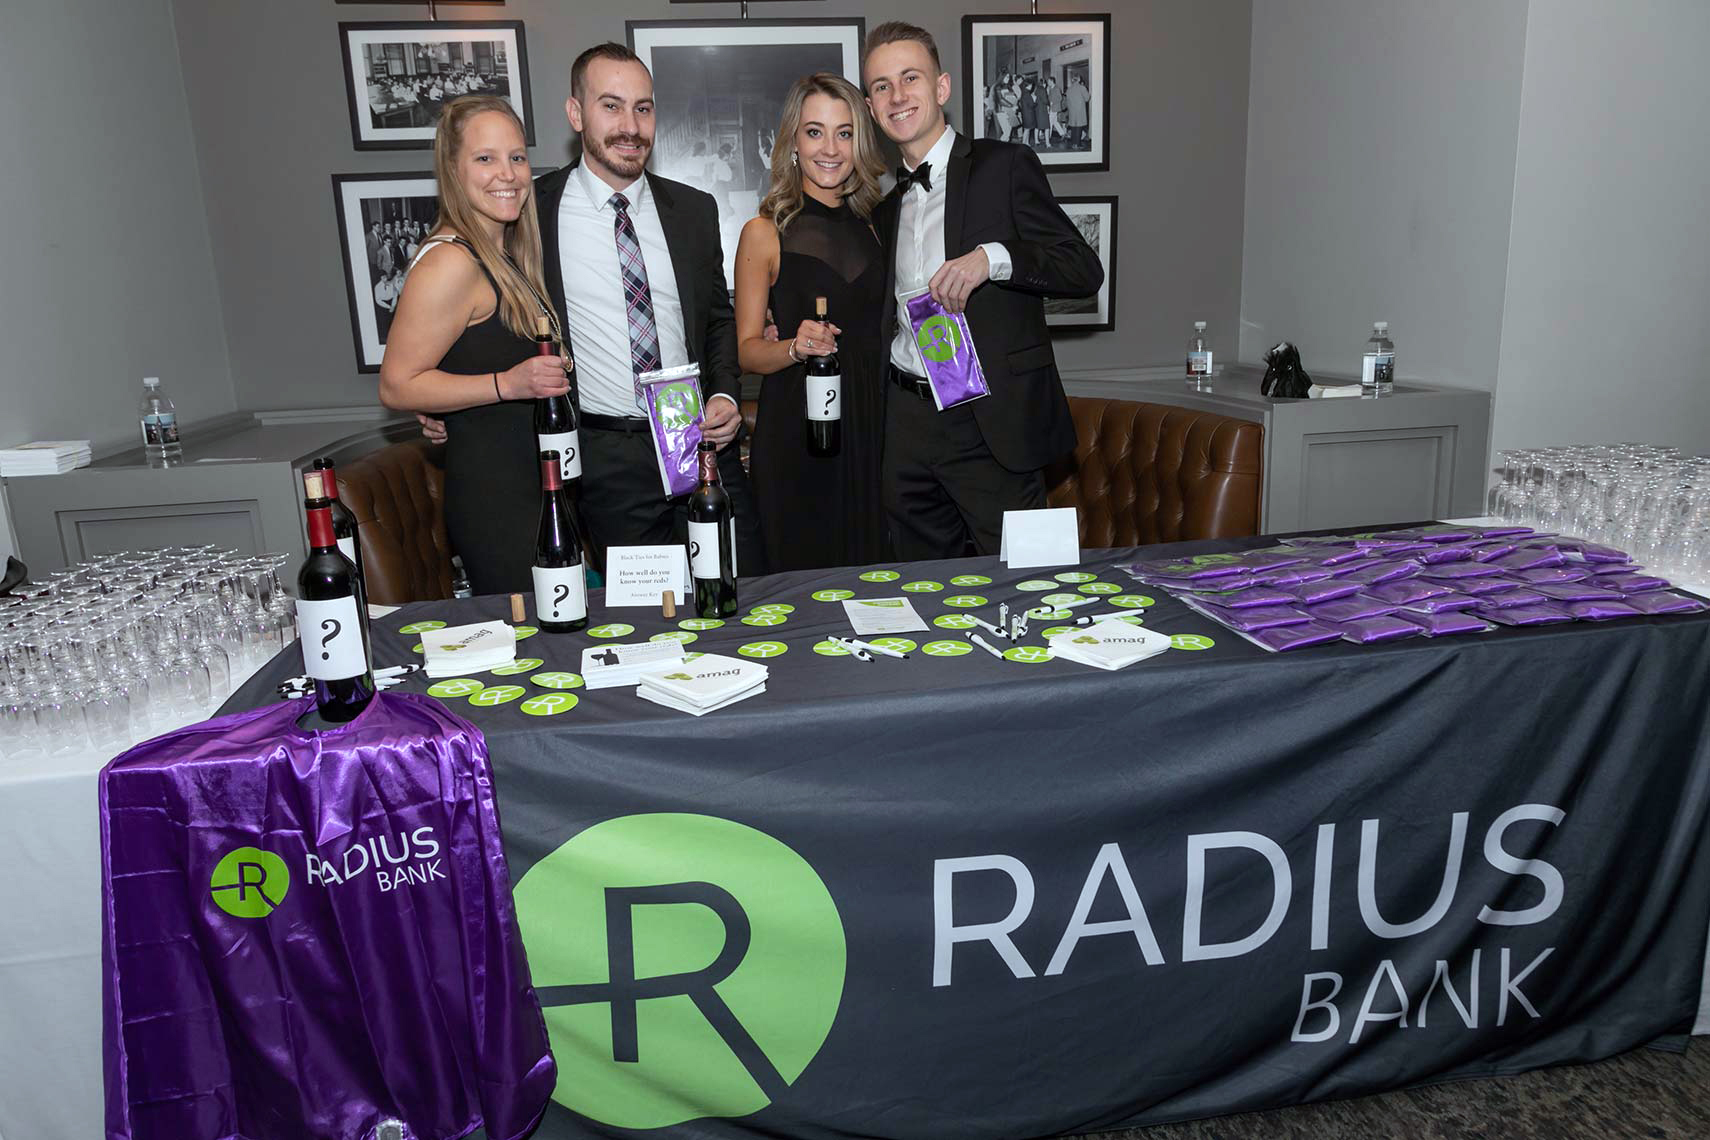 007-Corporate event sponsor Radius Bank presenting a blind wine tasting at the Black Ties for Babies gala